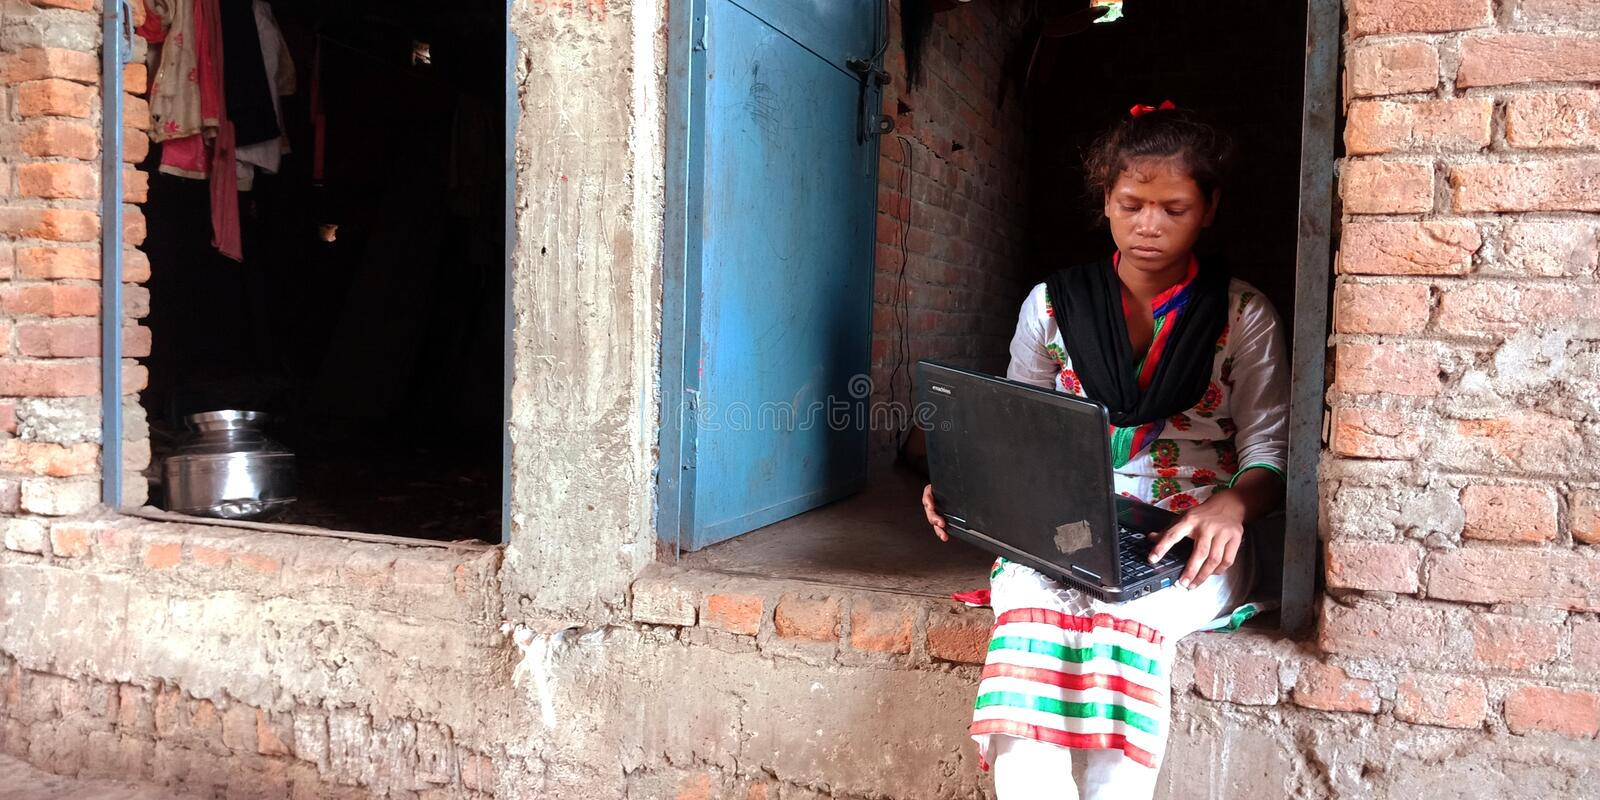 An indian villager teen operating laptop computer seating at corridor. Grandfather, using, mobile, conversation, matured, learning, system, illiterate, people stock images